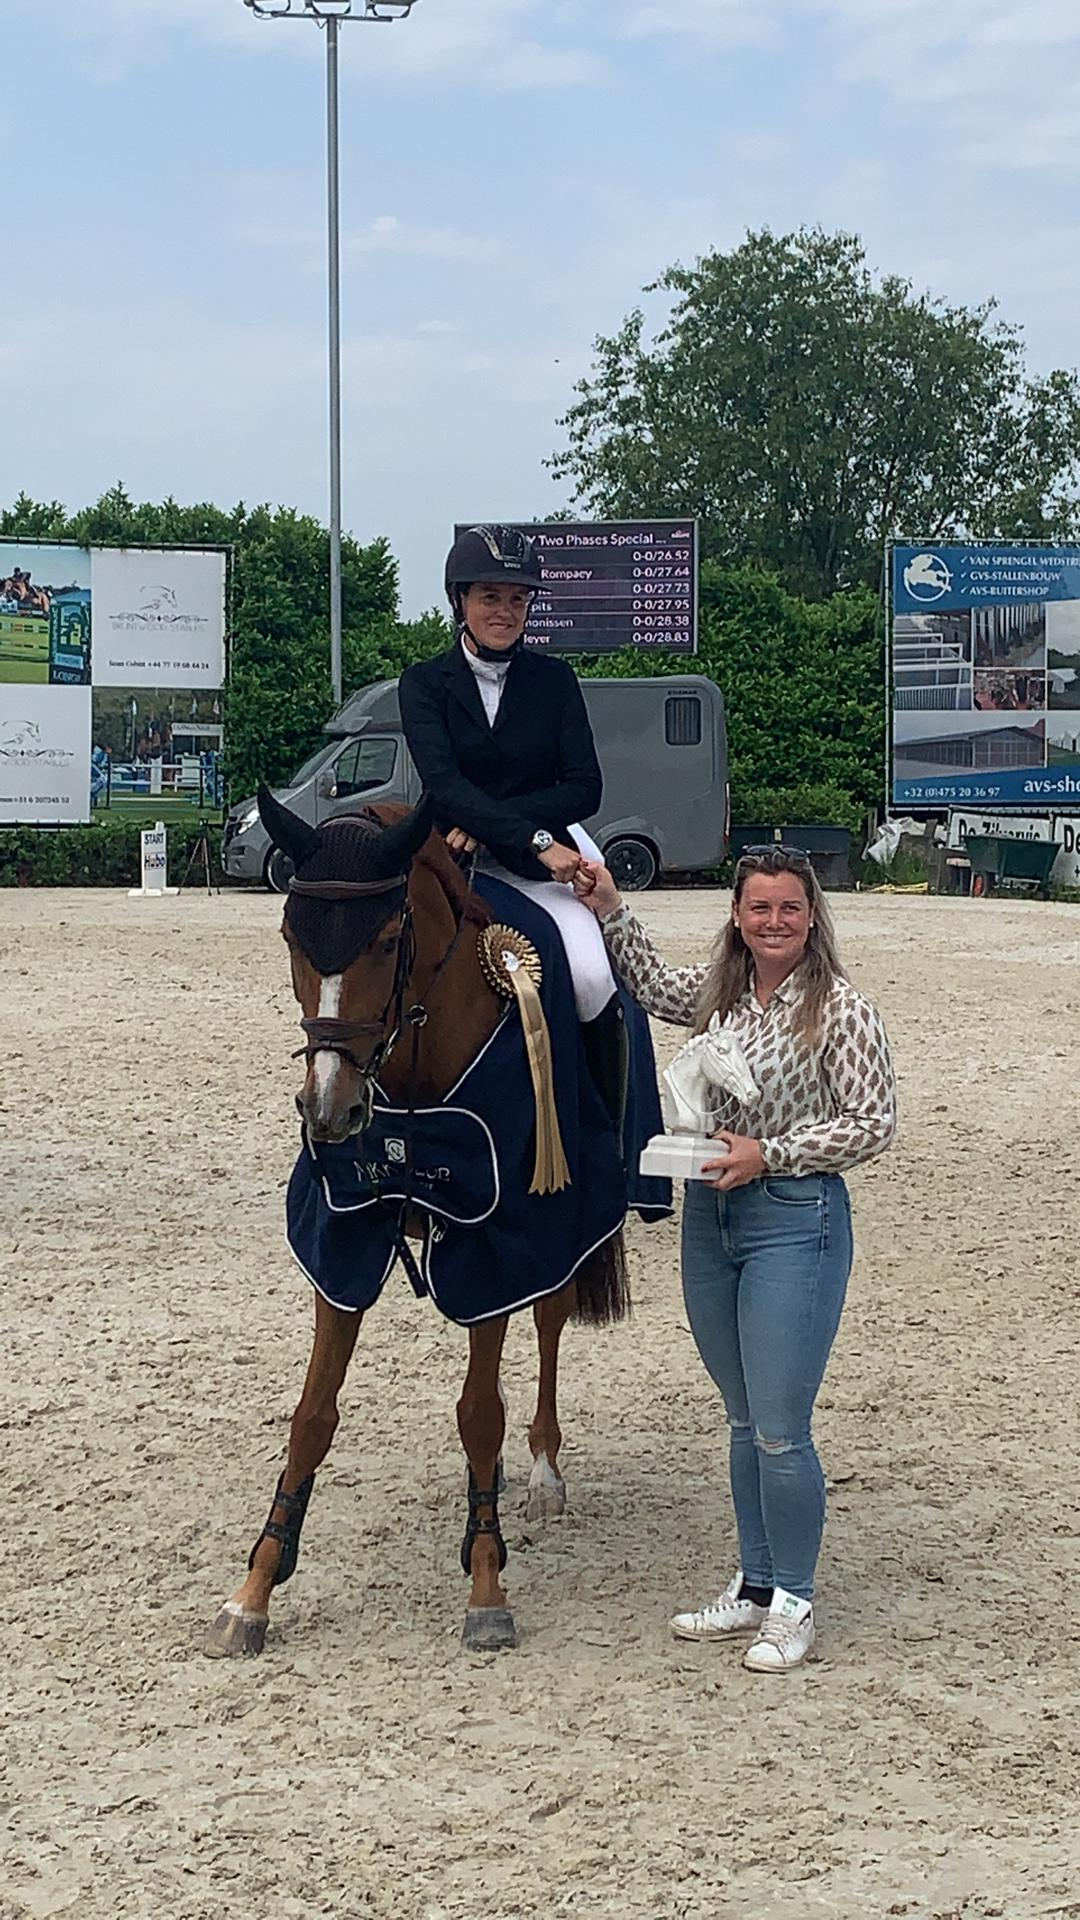 Kim Emmen wins the main competition in Bonheiden with an ultra-fast chrono